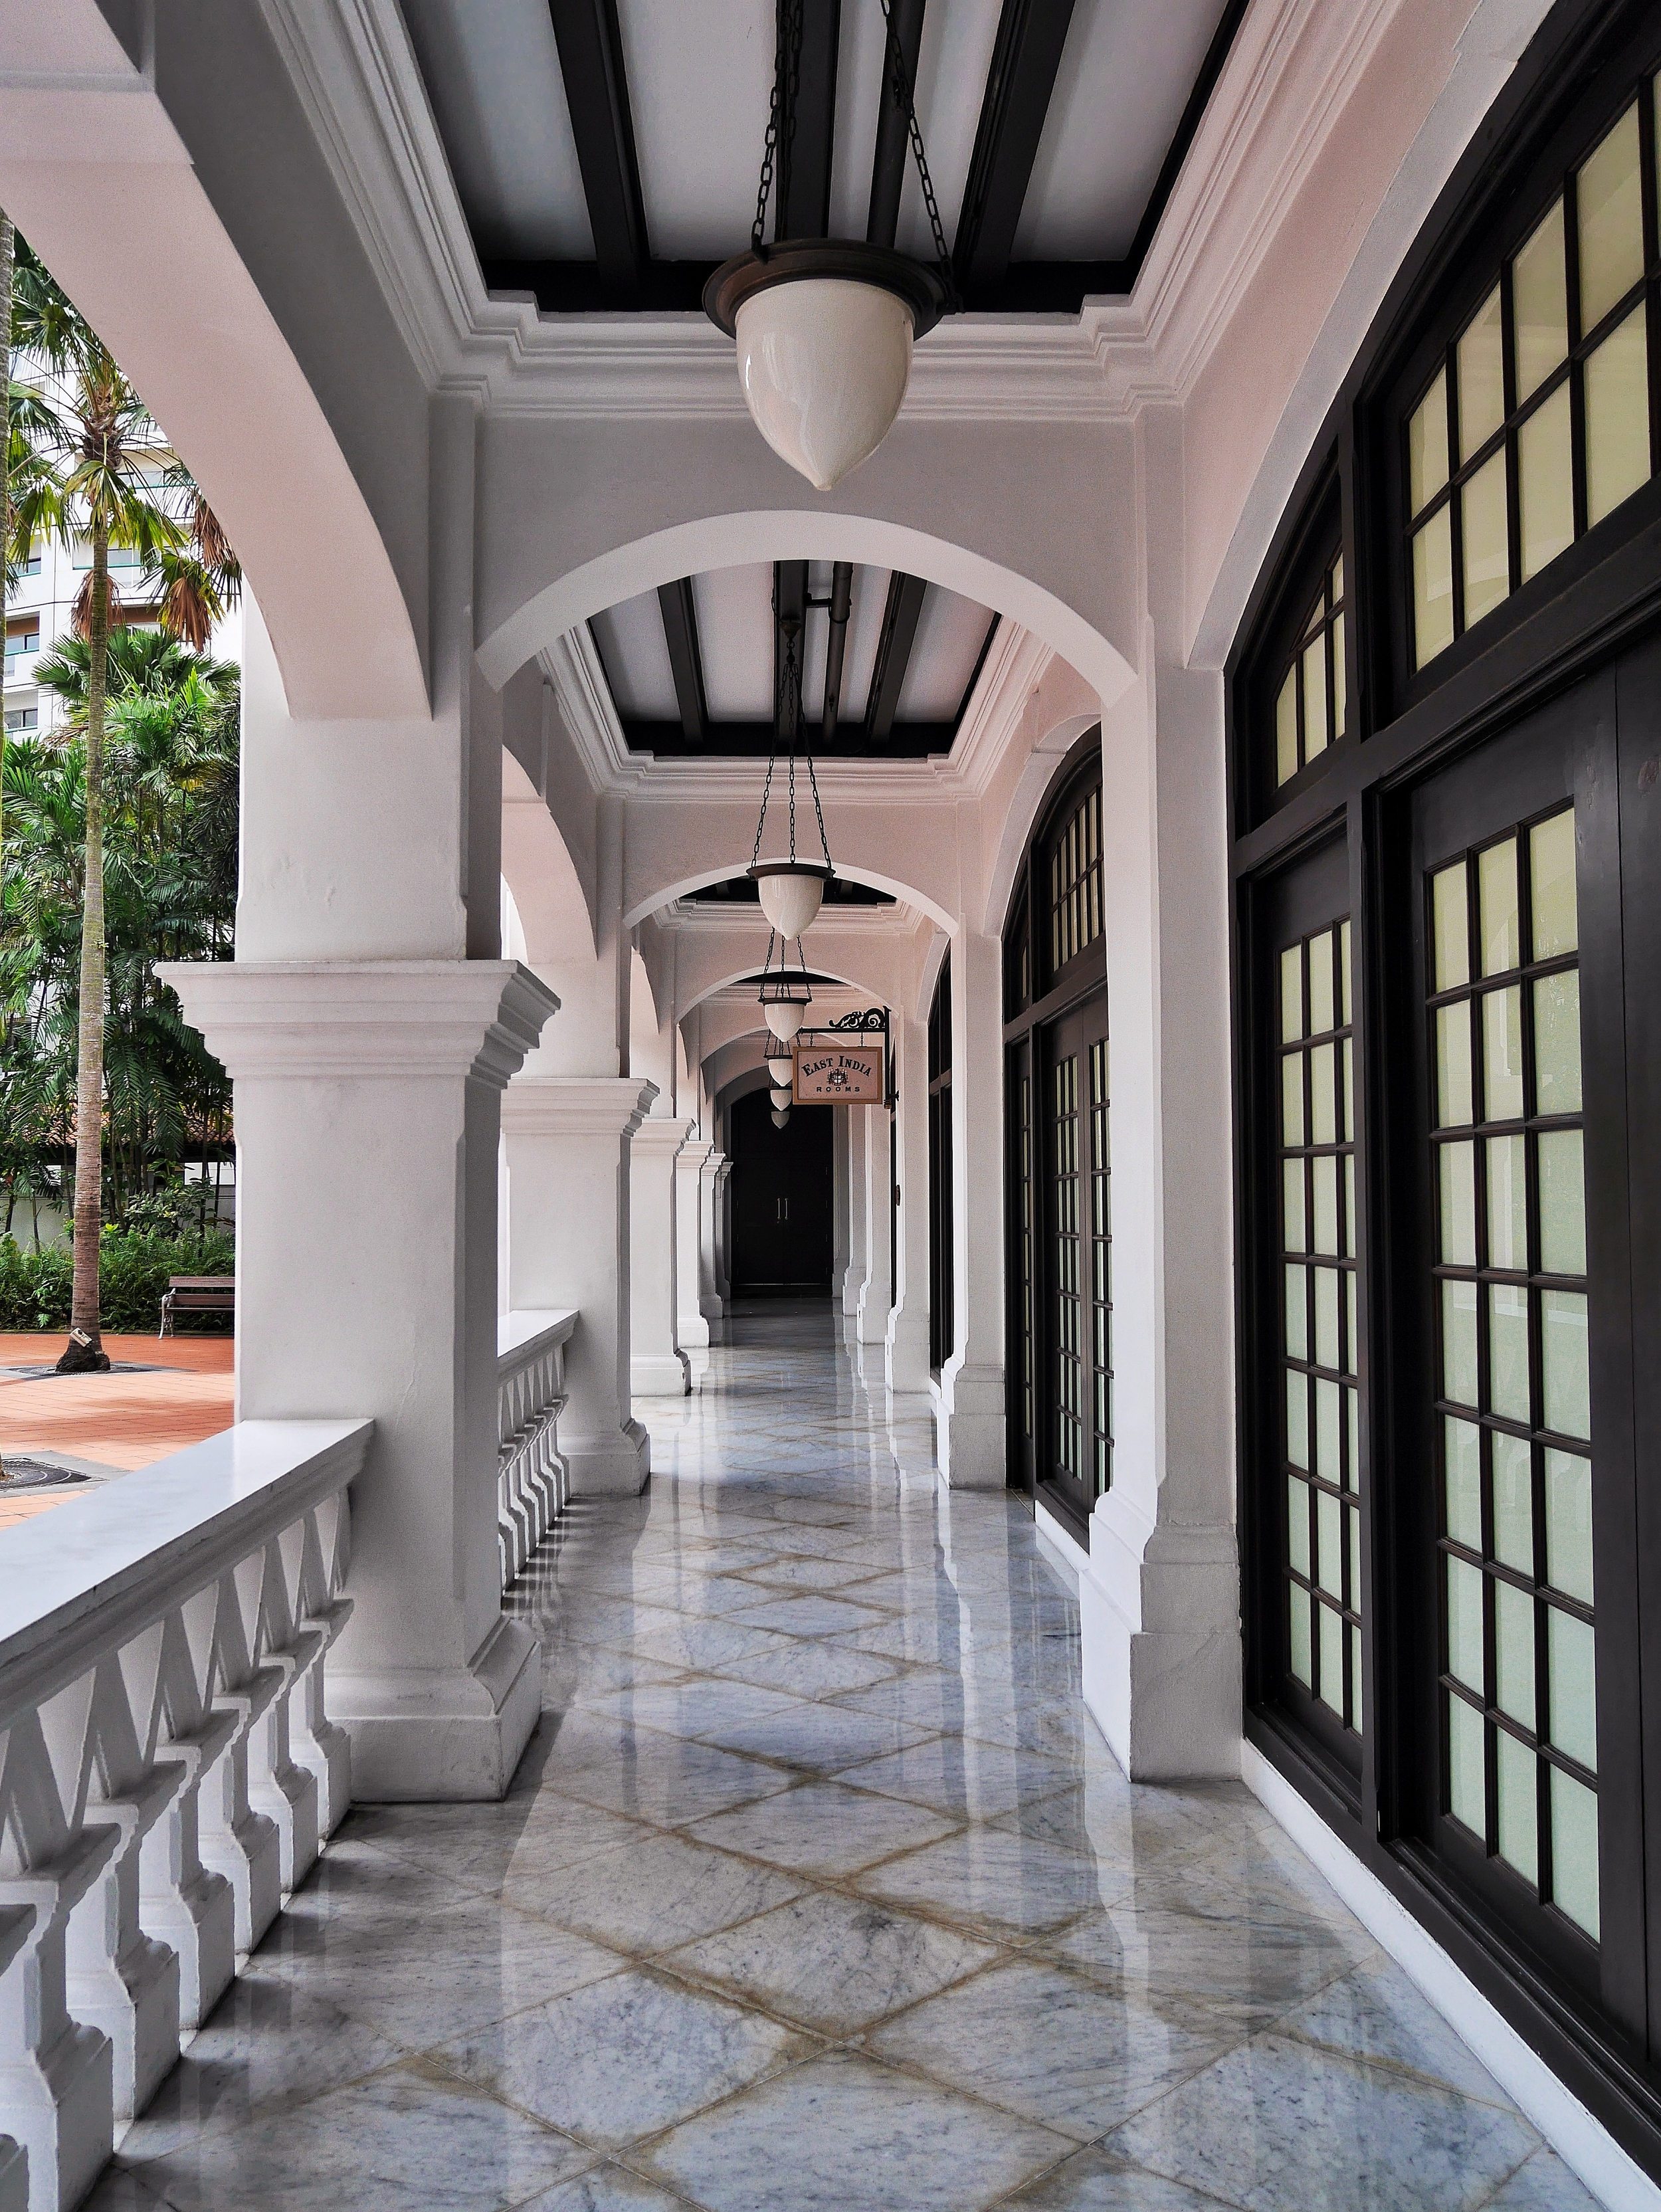 East India Rooms Passage